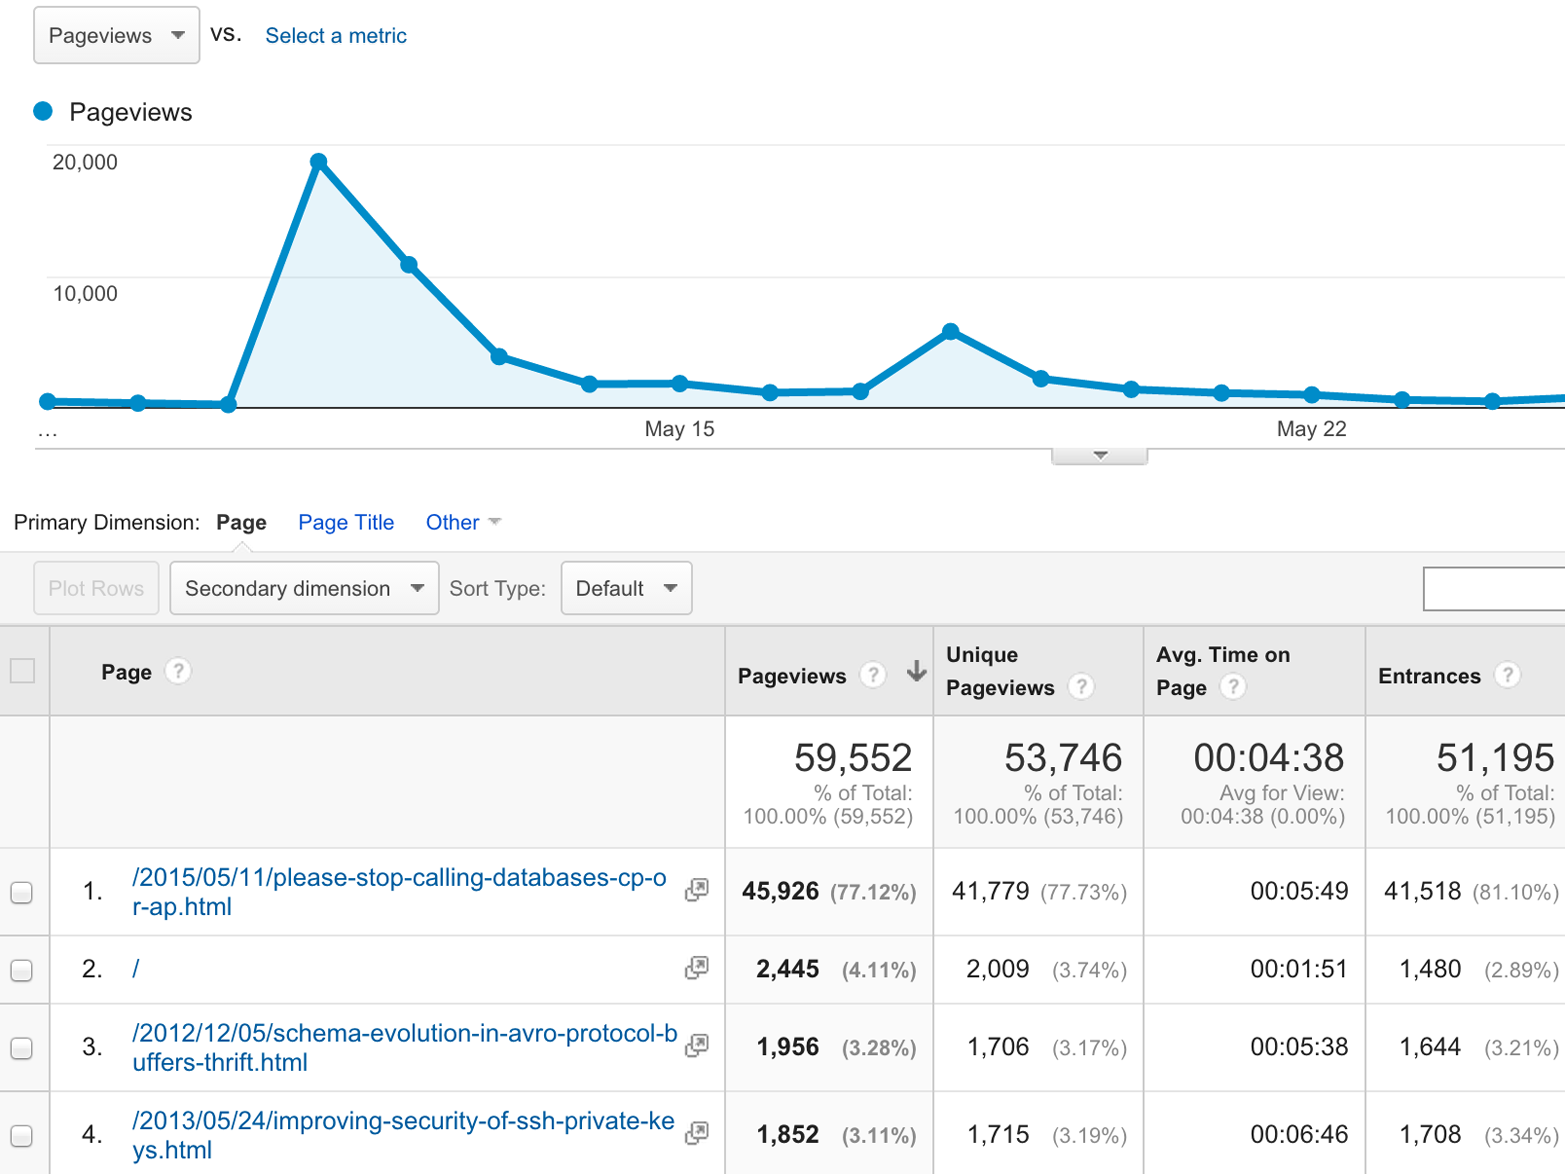 Google Analytics collects events (page views on a website) and helps you to analyze them.